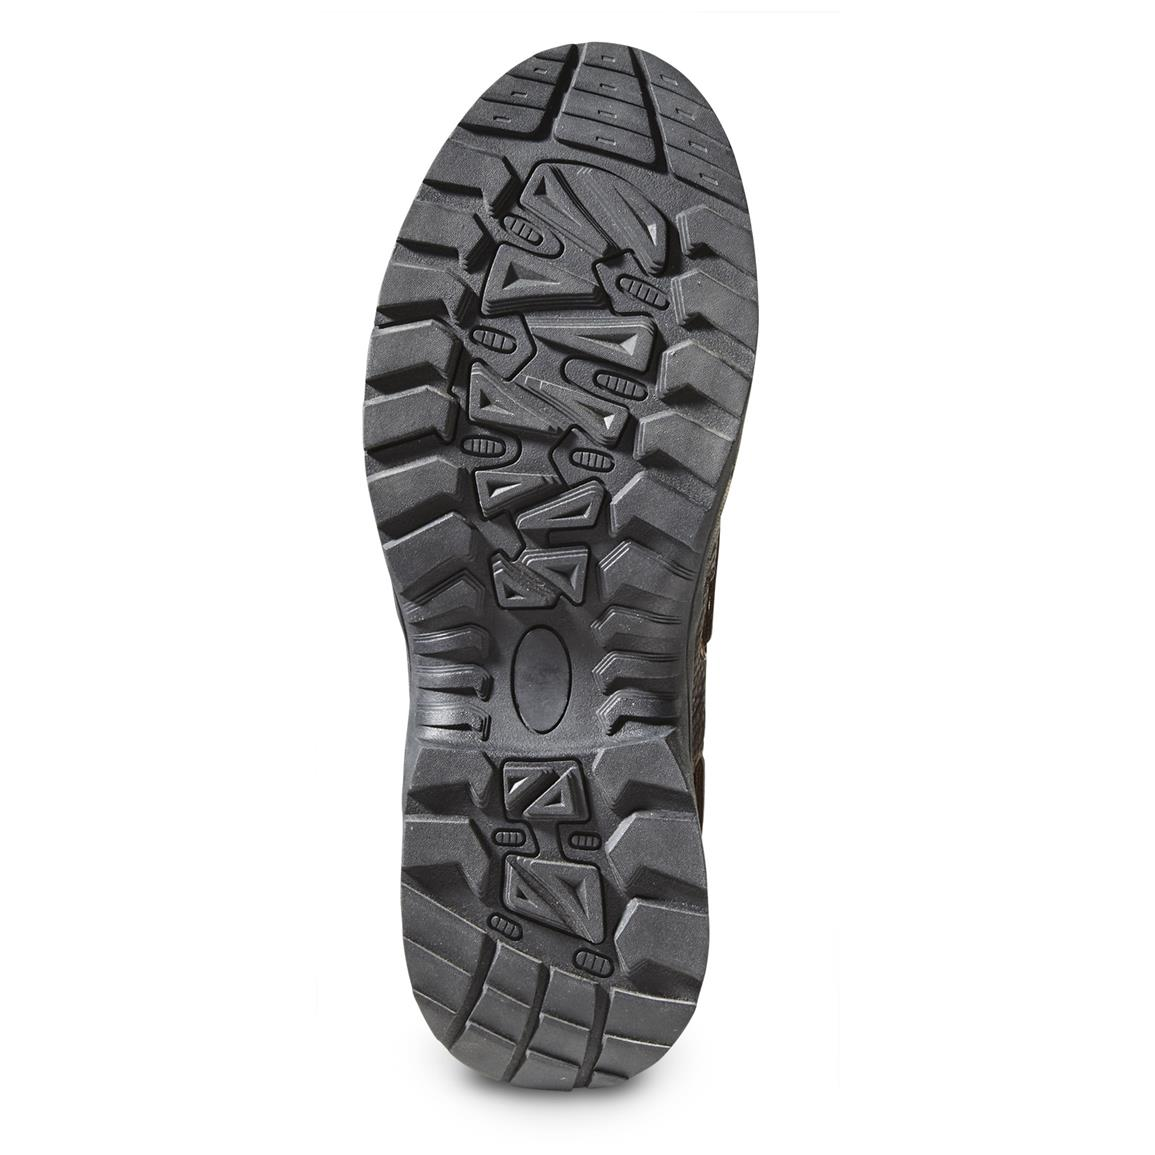 Aggressive rubber outsole can easily go off-road